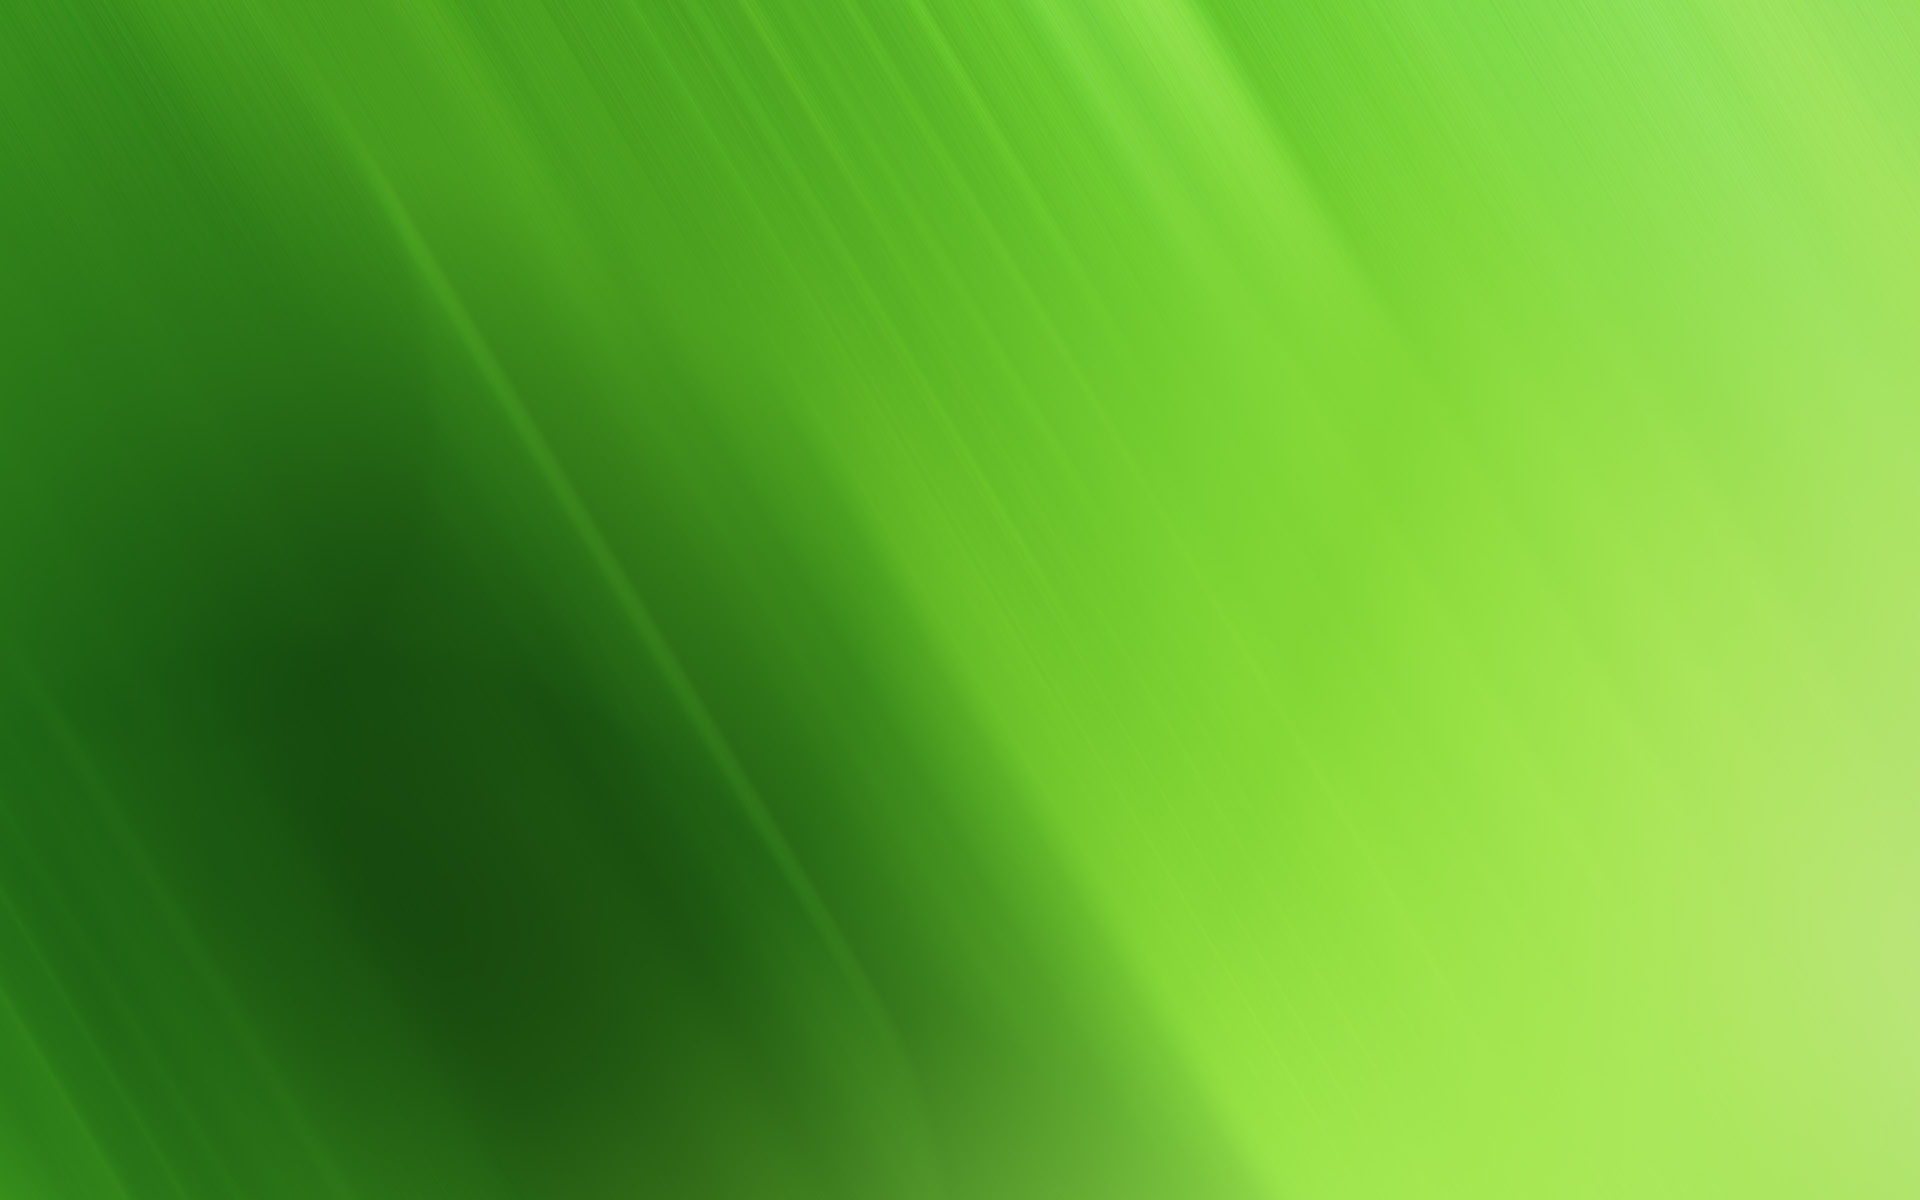 Green Background Hd Designs  images free download 1920x1200